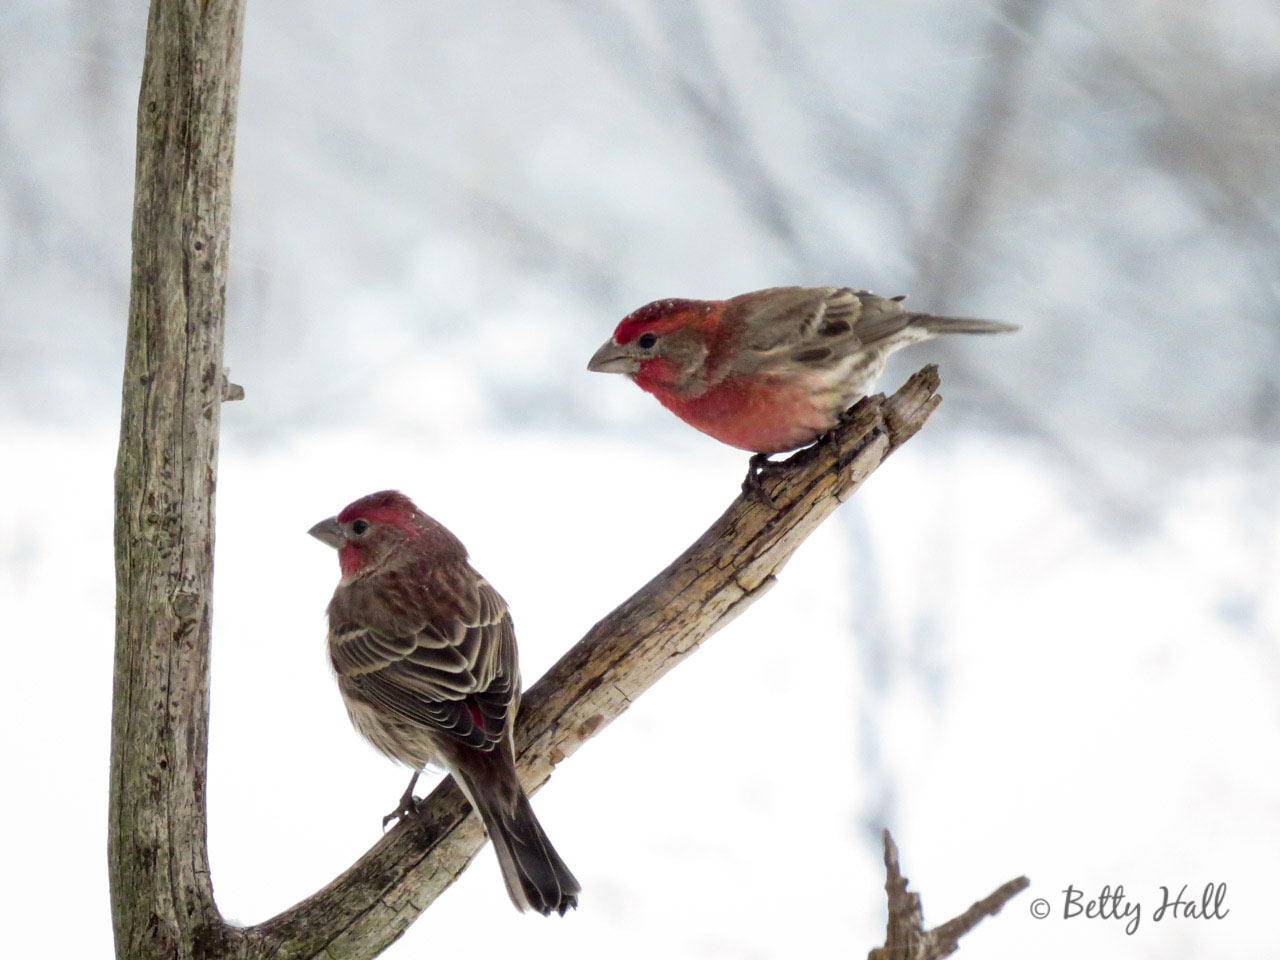 Two male House Finches